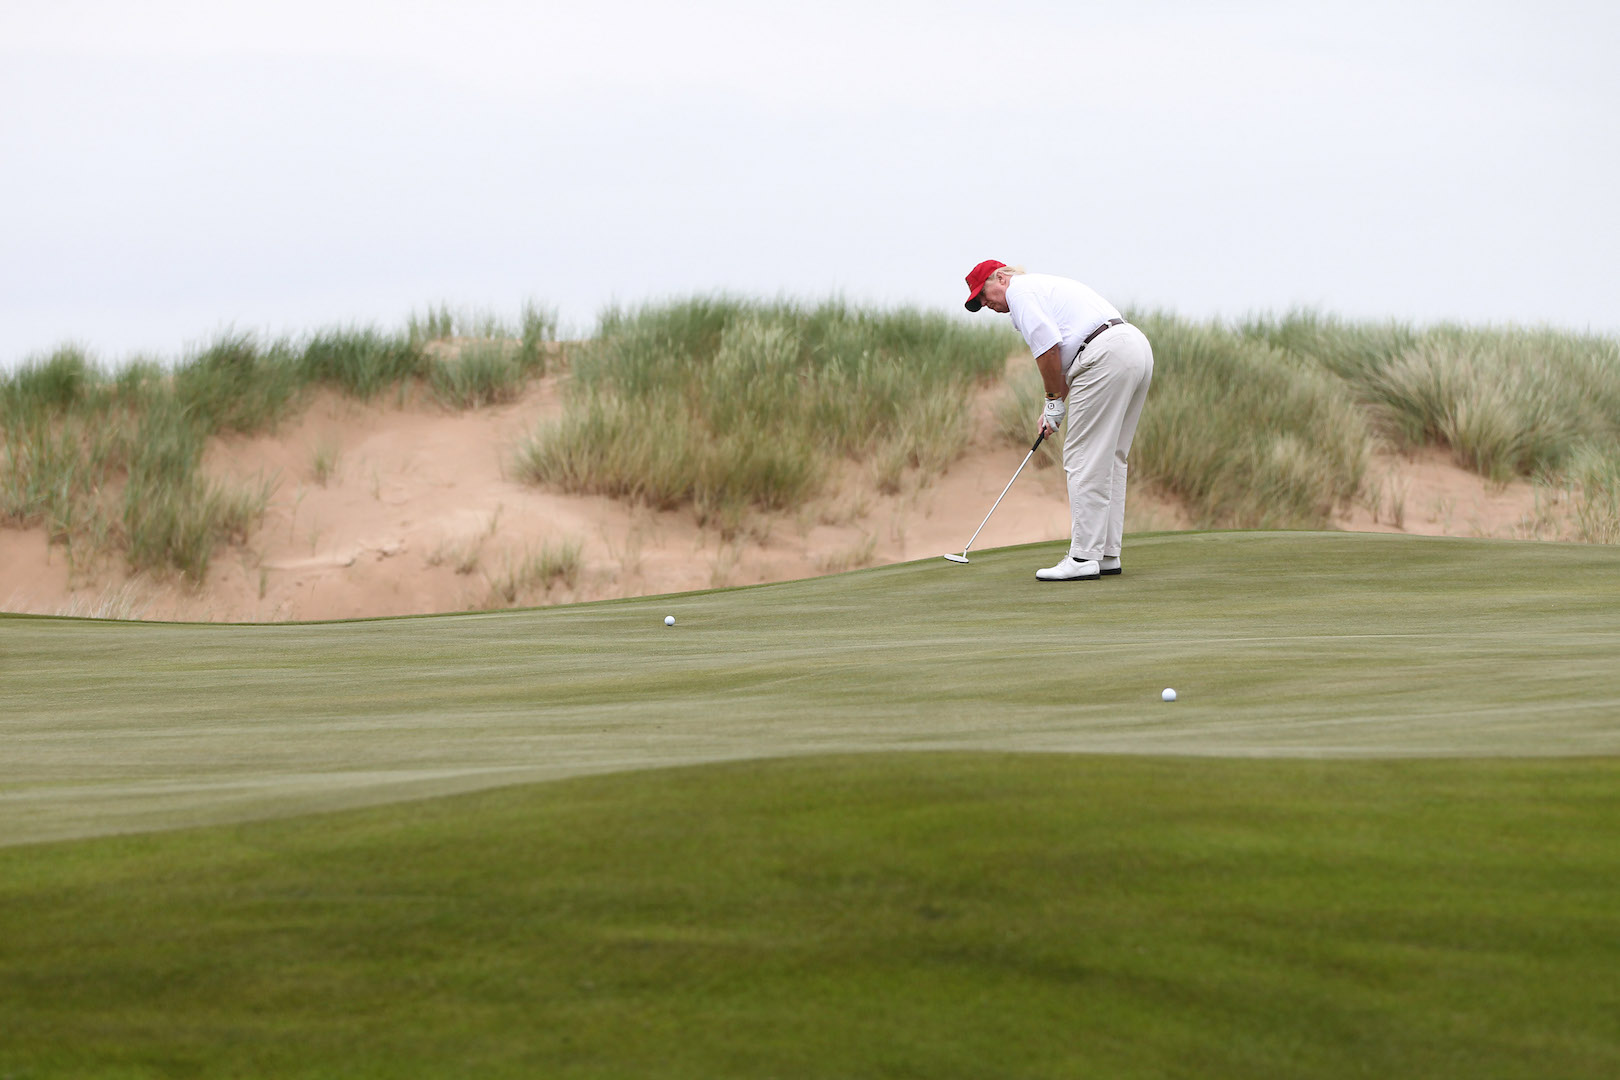 Win a round of golf with Donald Trump